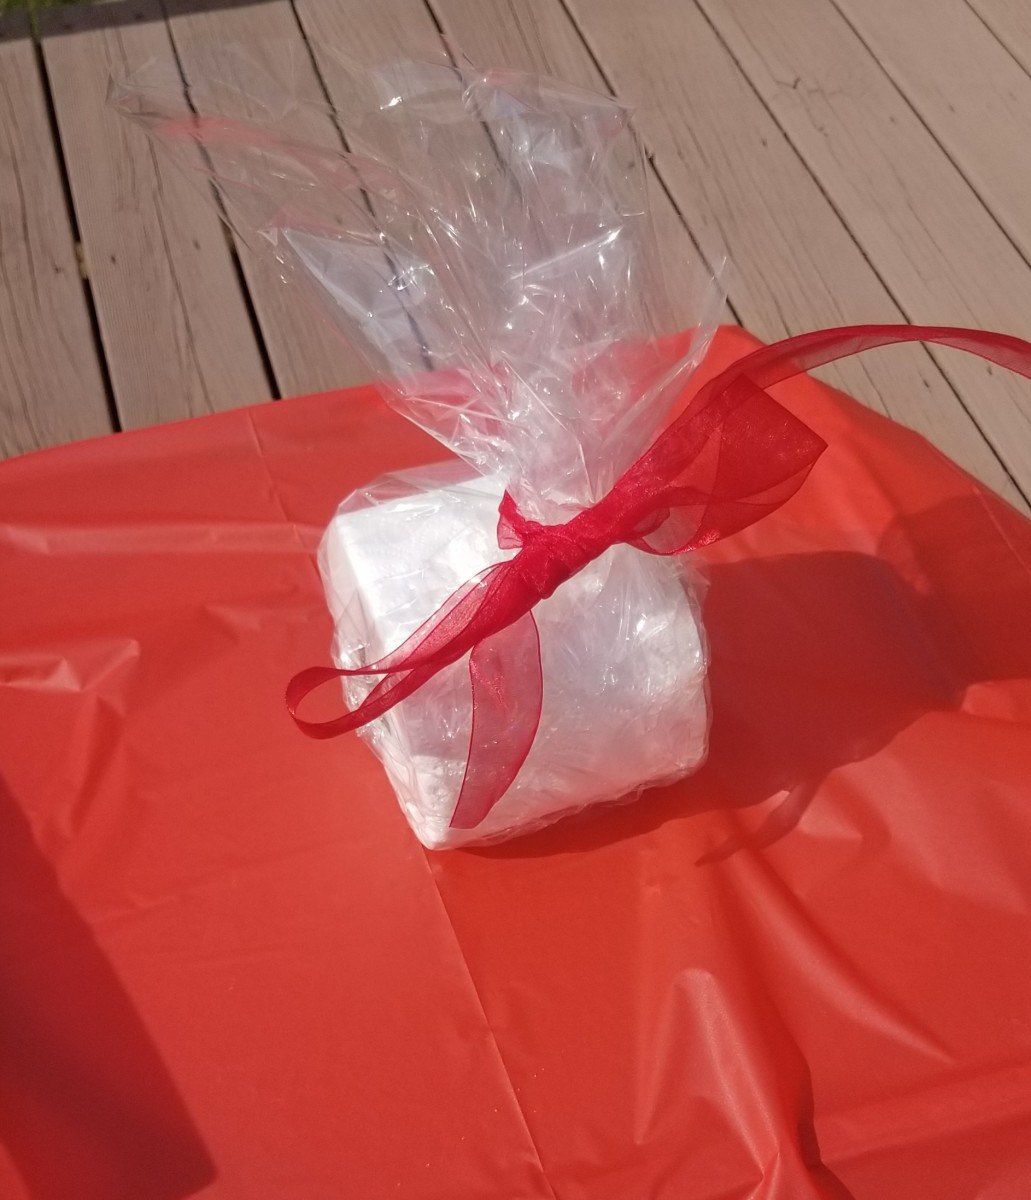 This toilet-paper prize is all wrapped up for the lucky winner.